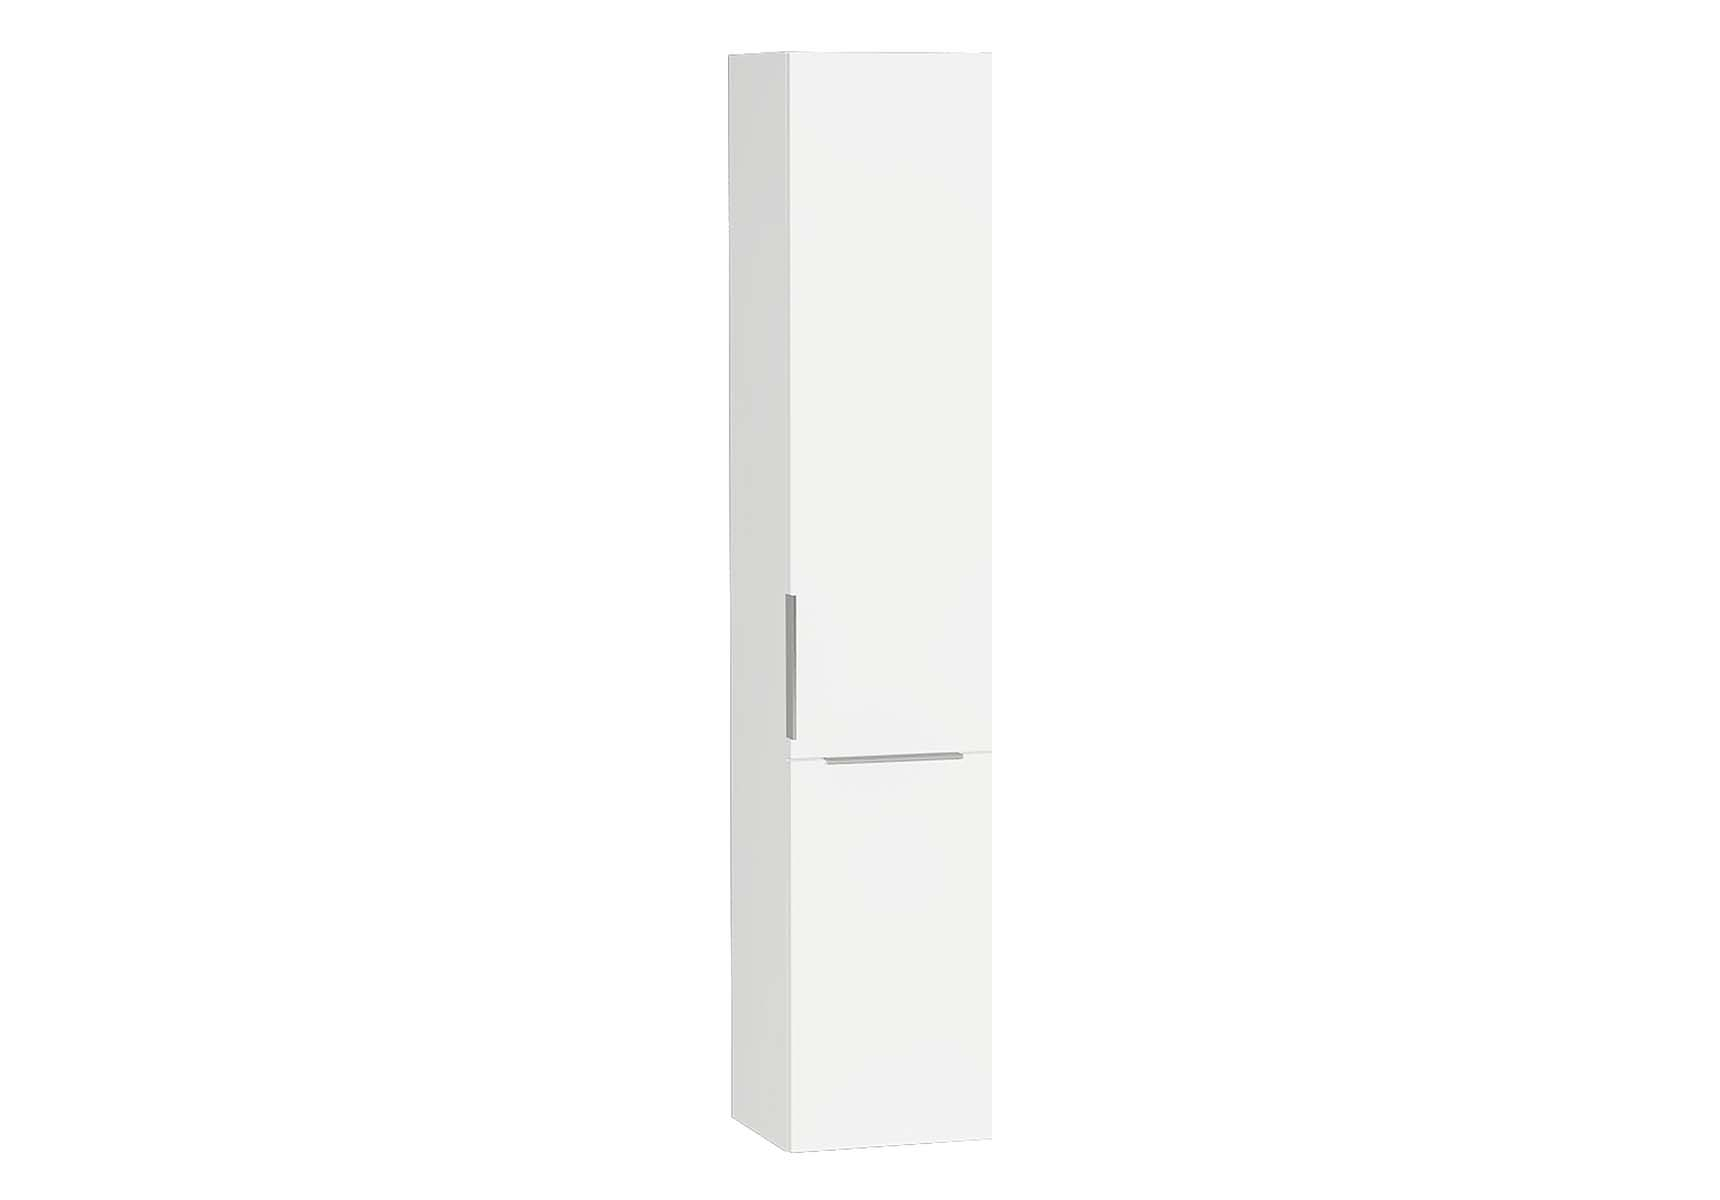 Central Tall Unit, with basket, 35 cm, White High Gloss, Right